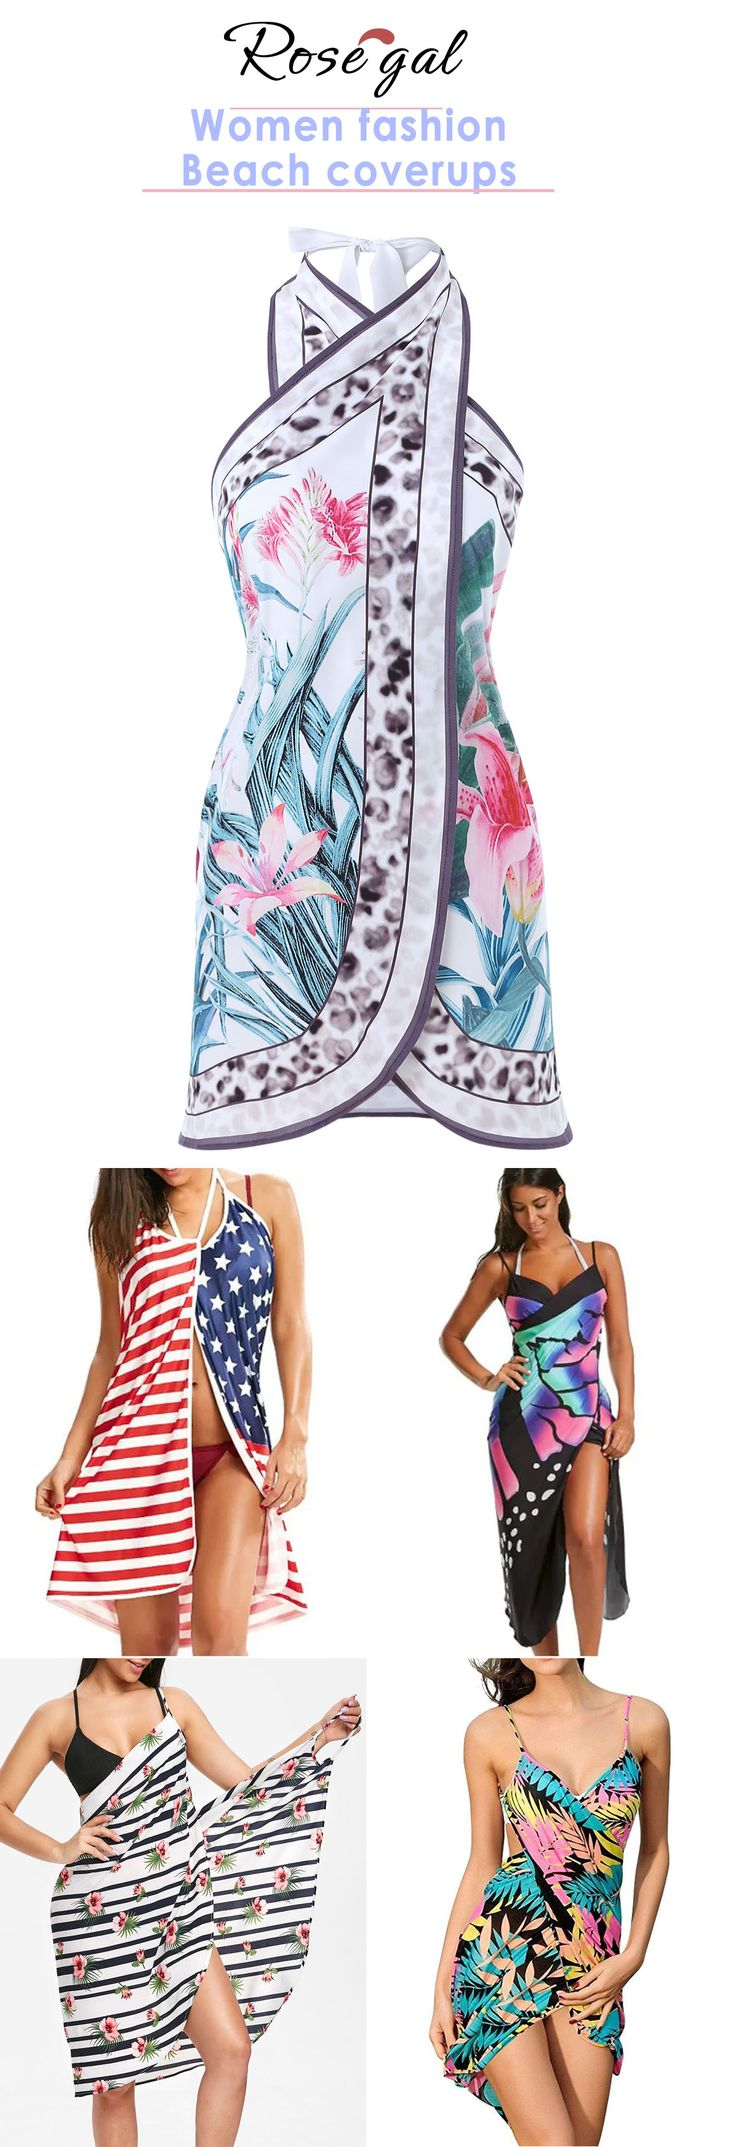 Rosegal 2019 spring summer fashion beach swimsuit coverups